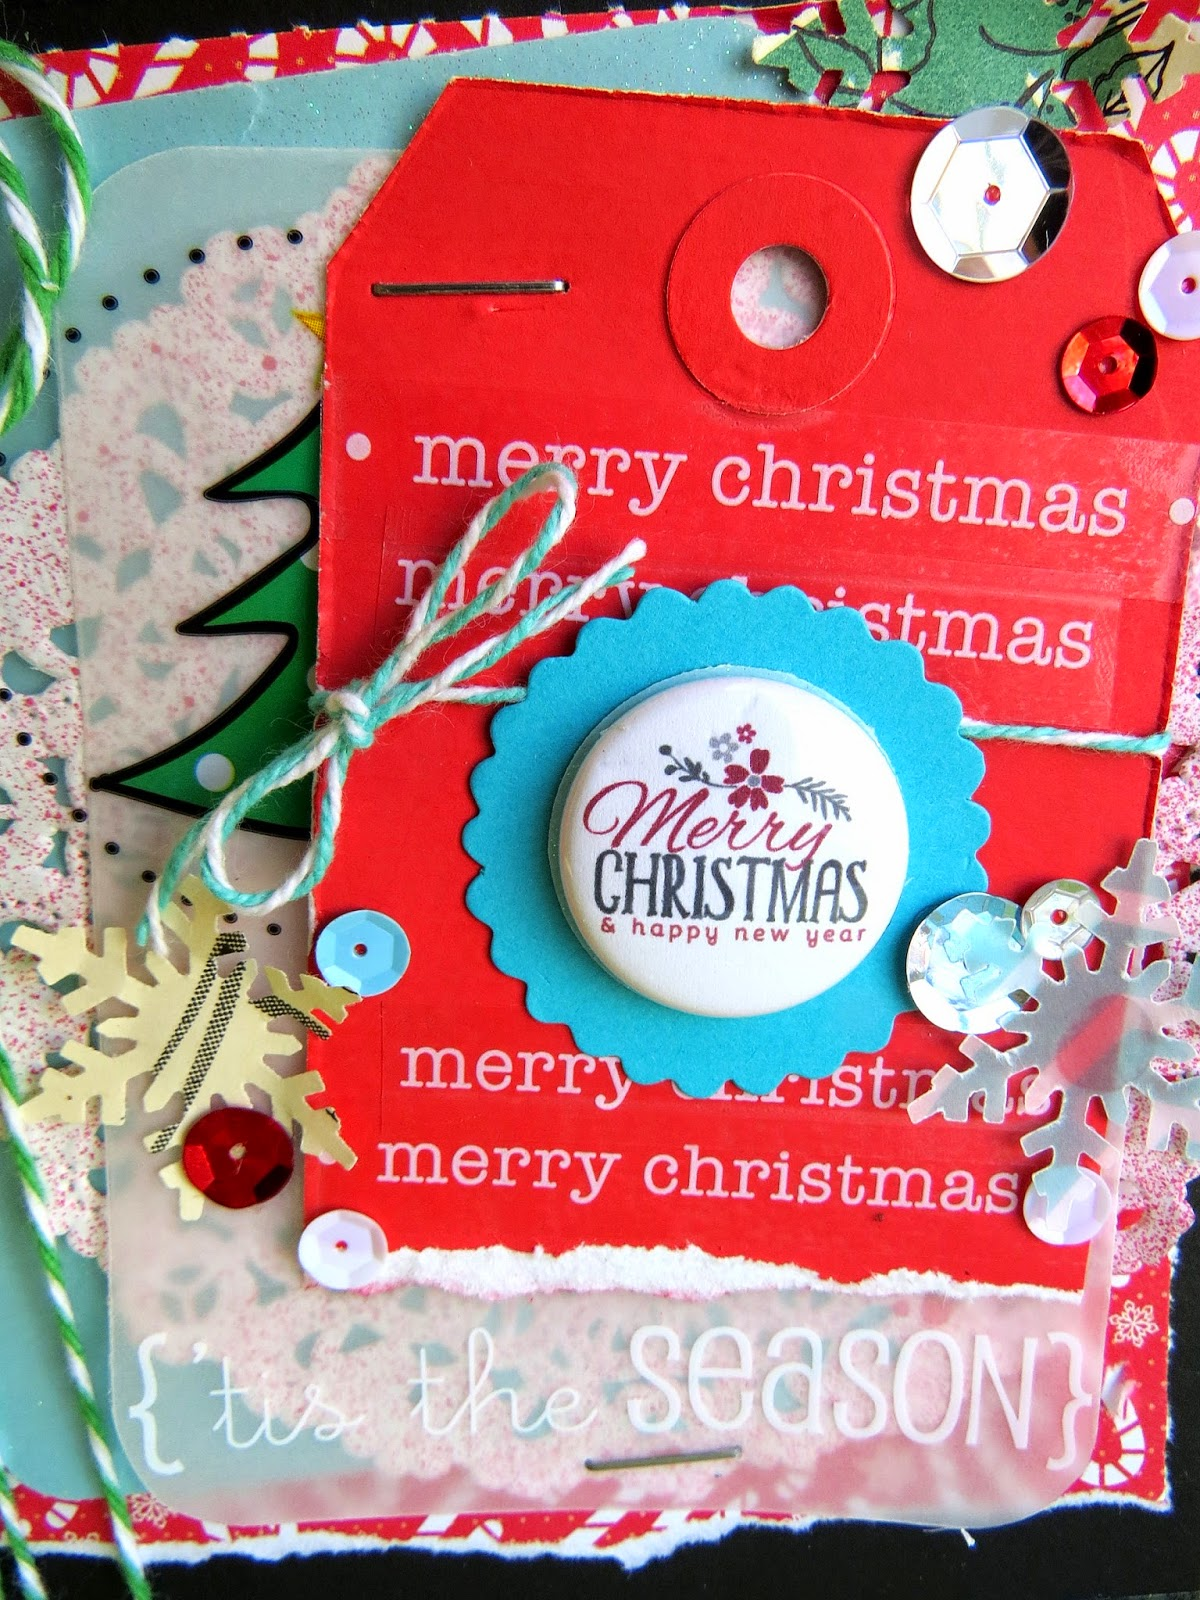 SRM Stickers Blog - A Bossy Joscie & SRM Christmas! by Shannon - #card #christmas #bossyjoscie #flair #twine #stickers #doilies #punchedpieces